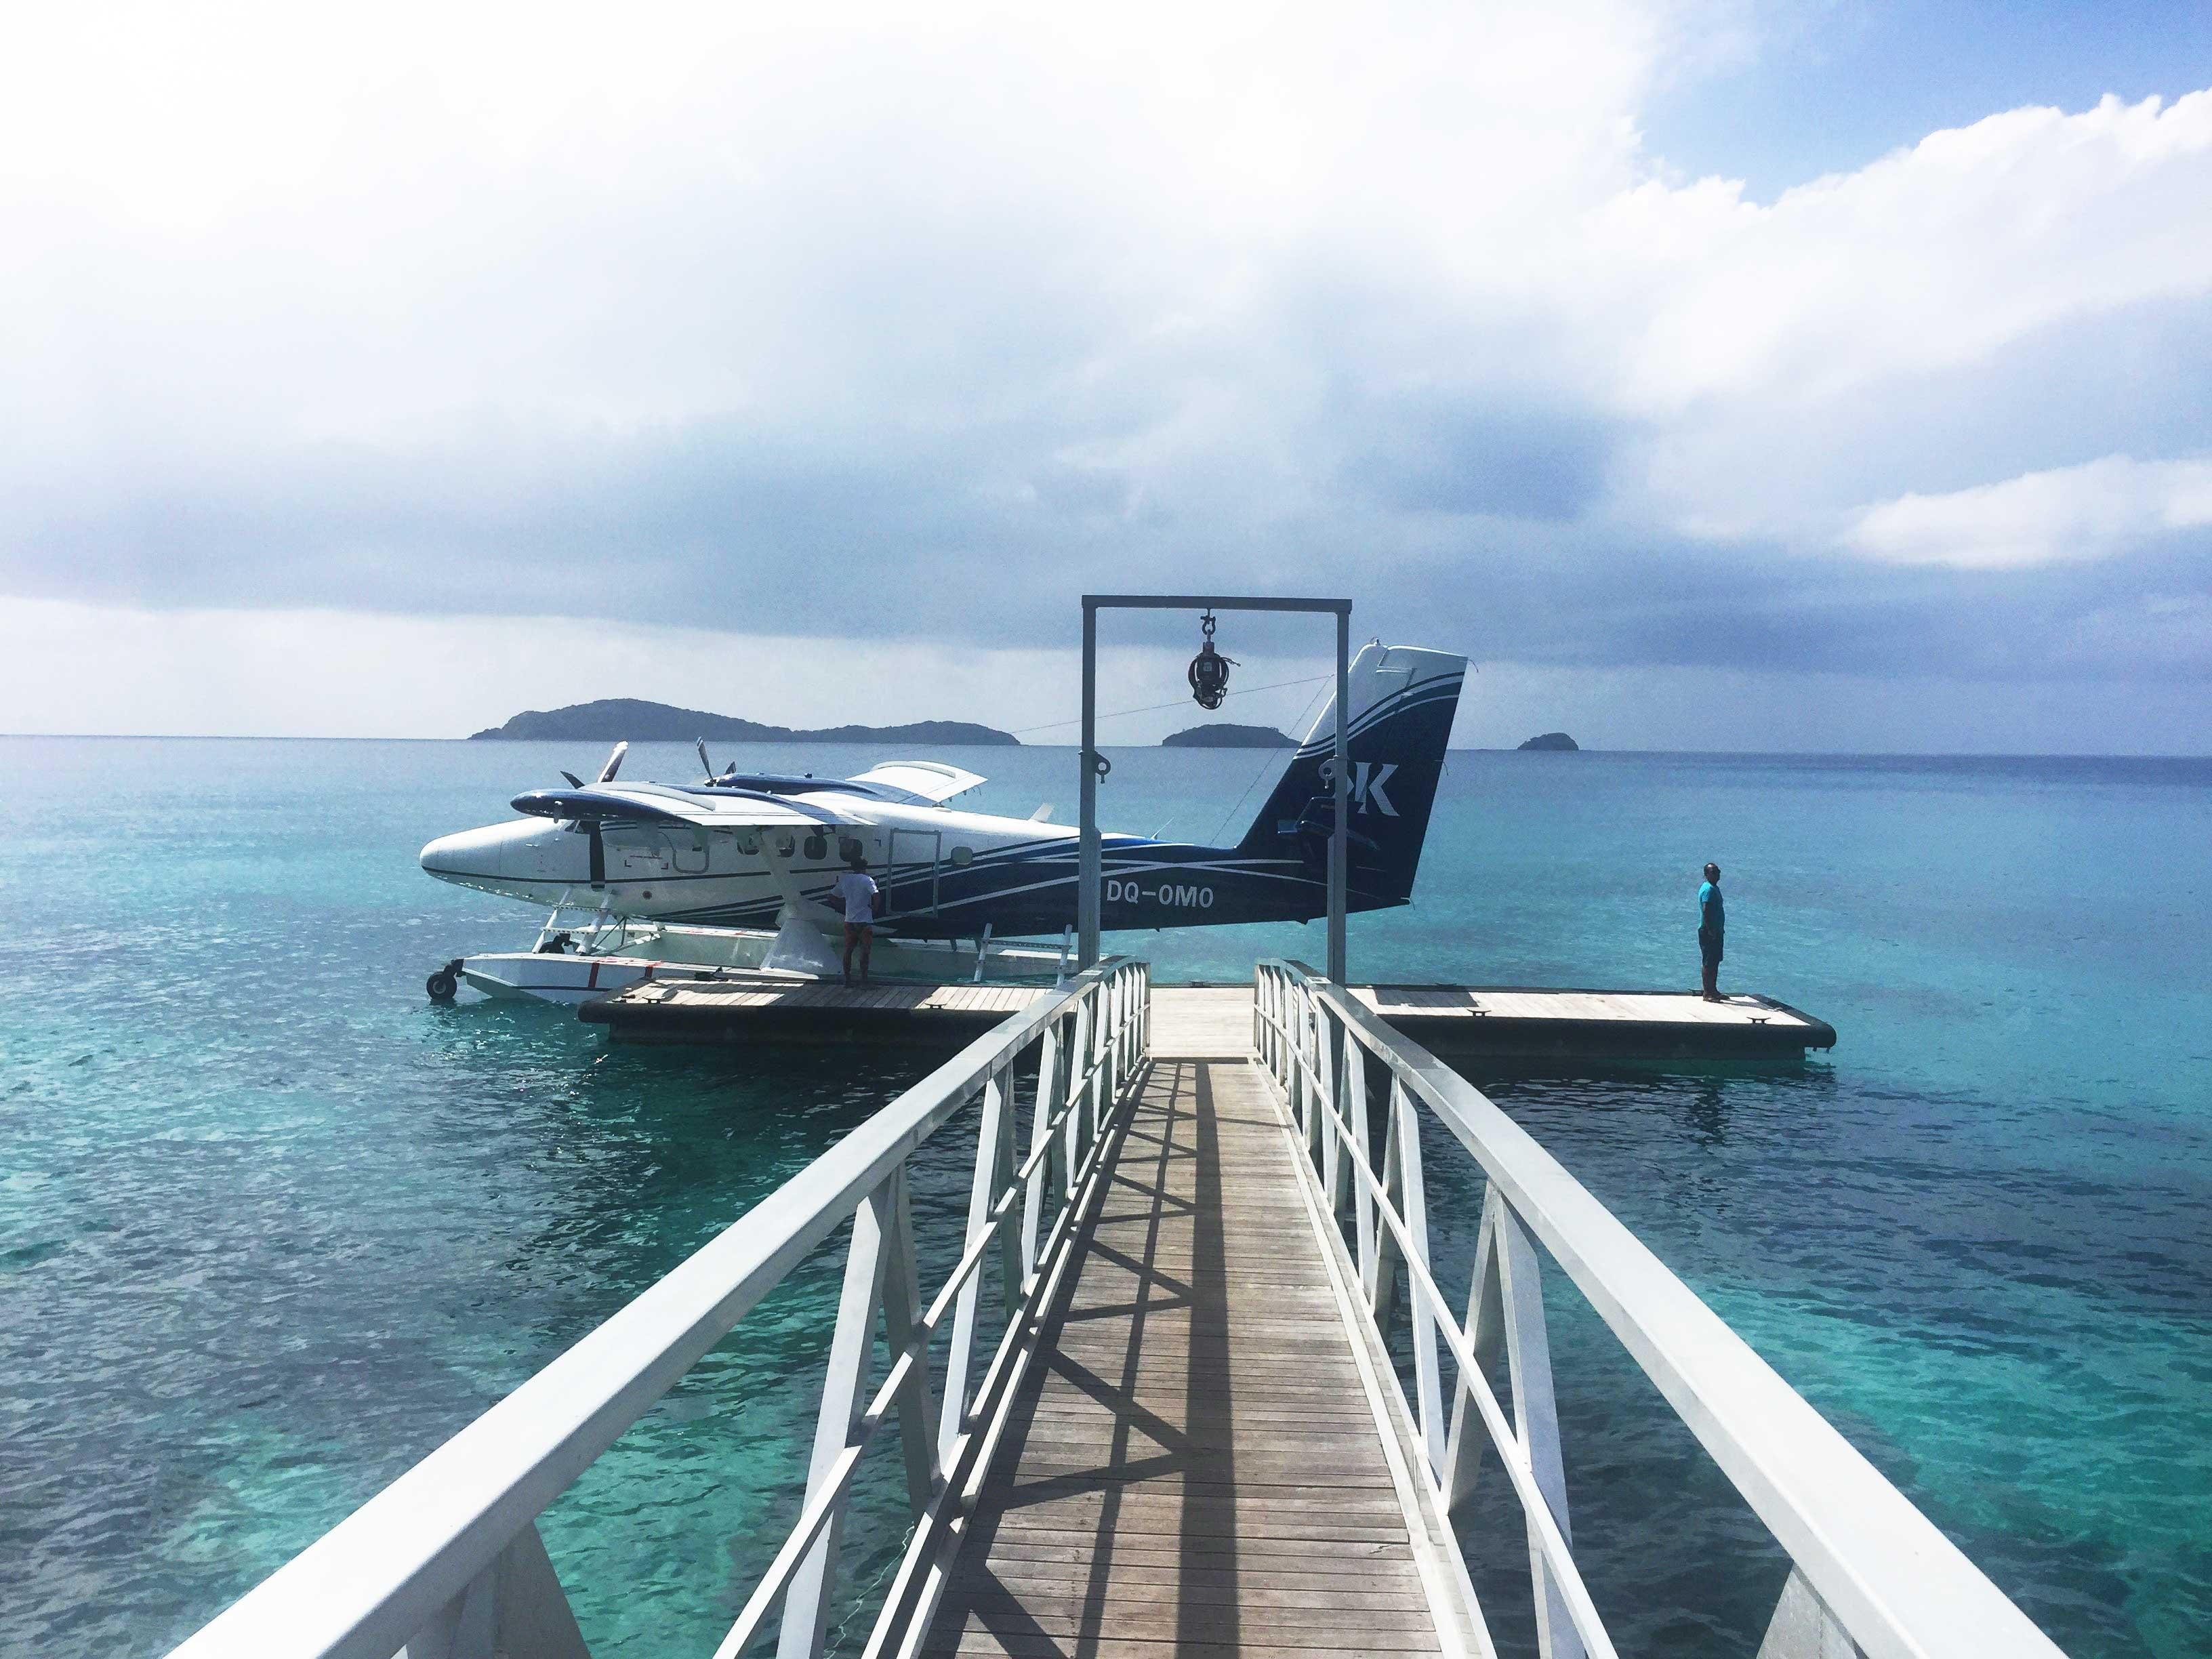 Walk to the end of the narrow pier where a seaplane waits on clear turquoise waters